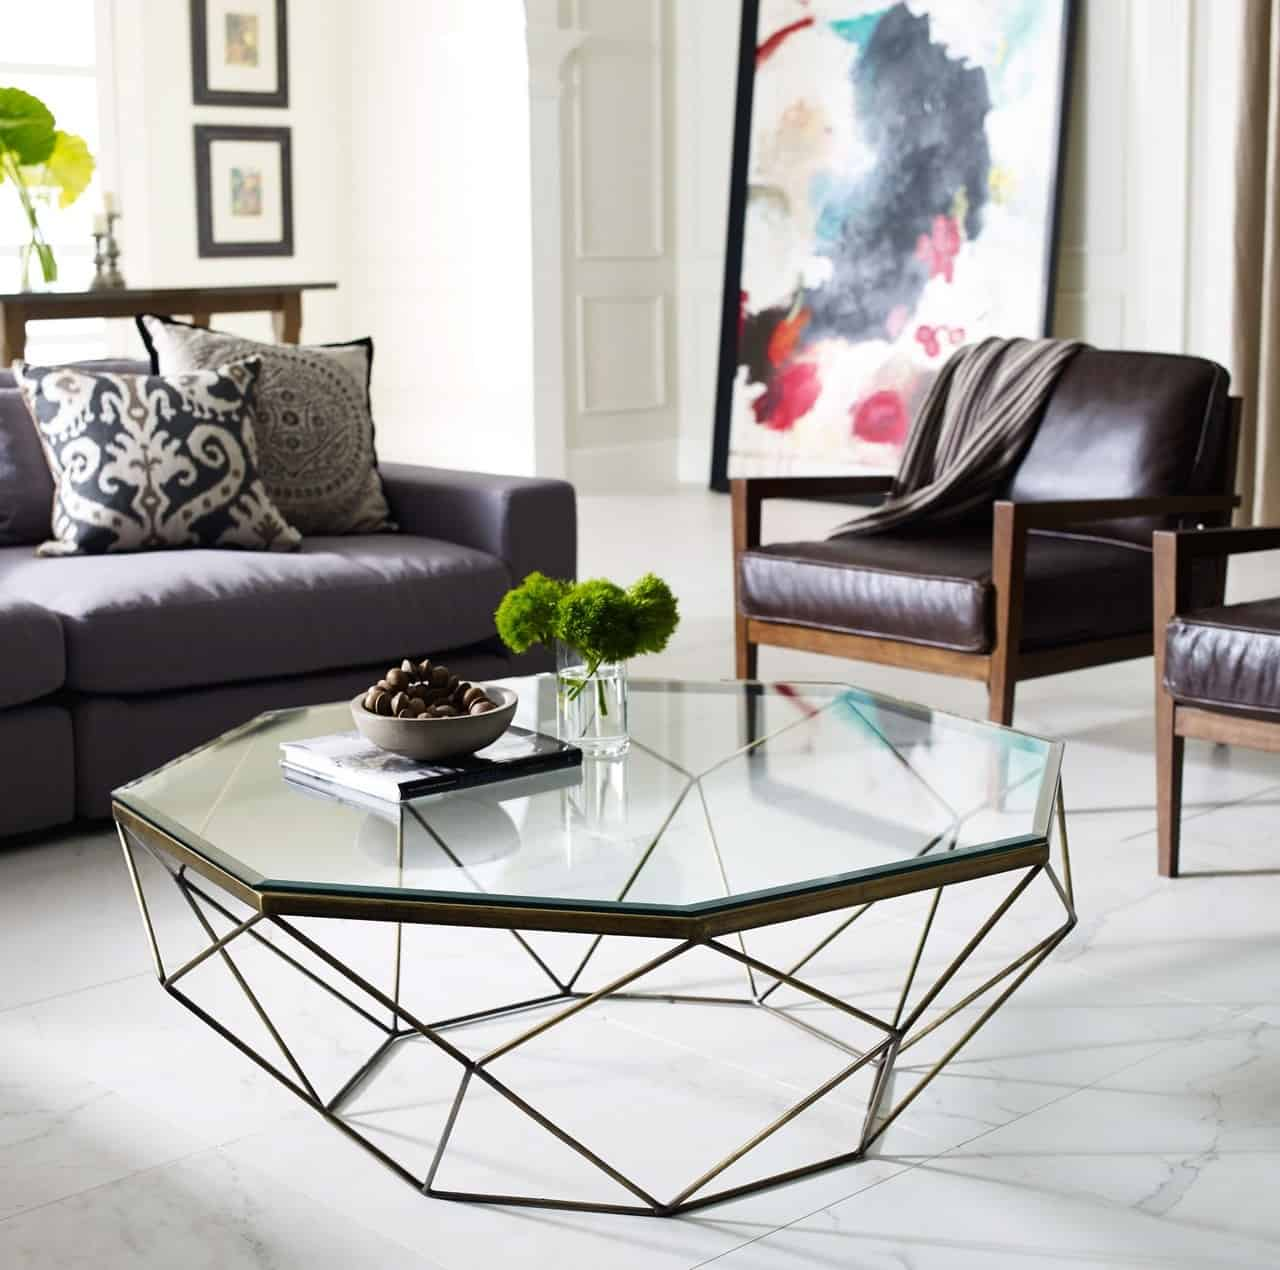 Modern coffee table trends for 2018 for Furniture 2018 trends